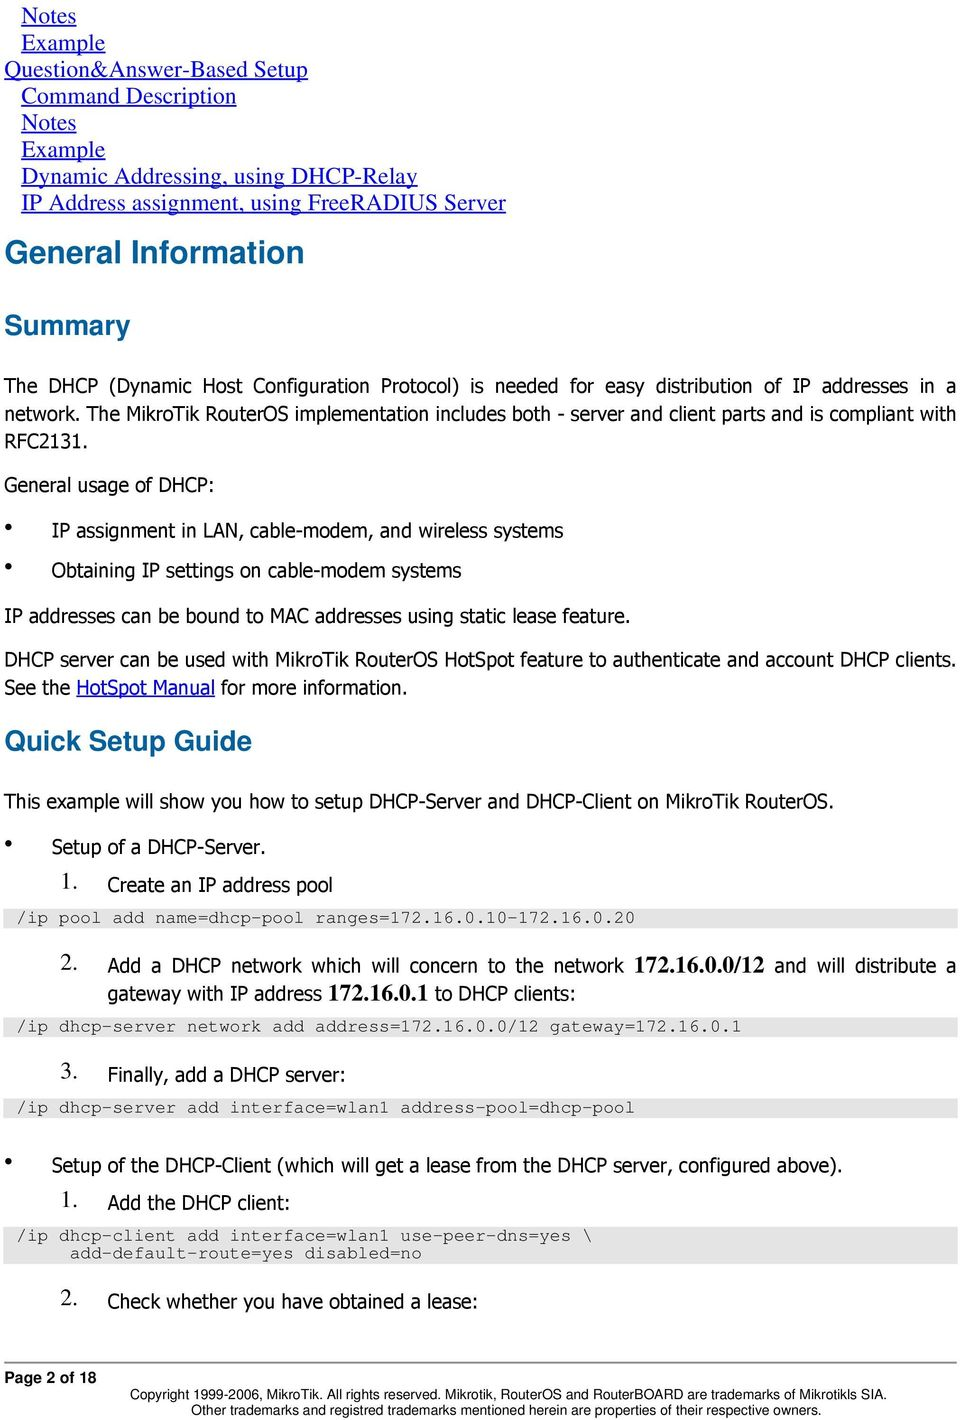 DHCP Client and Server - PDF